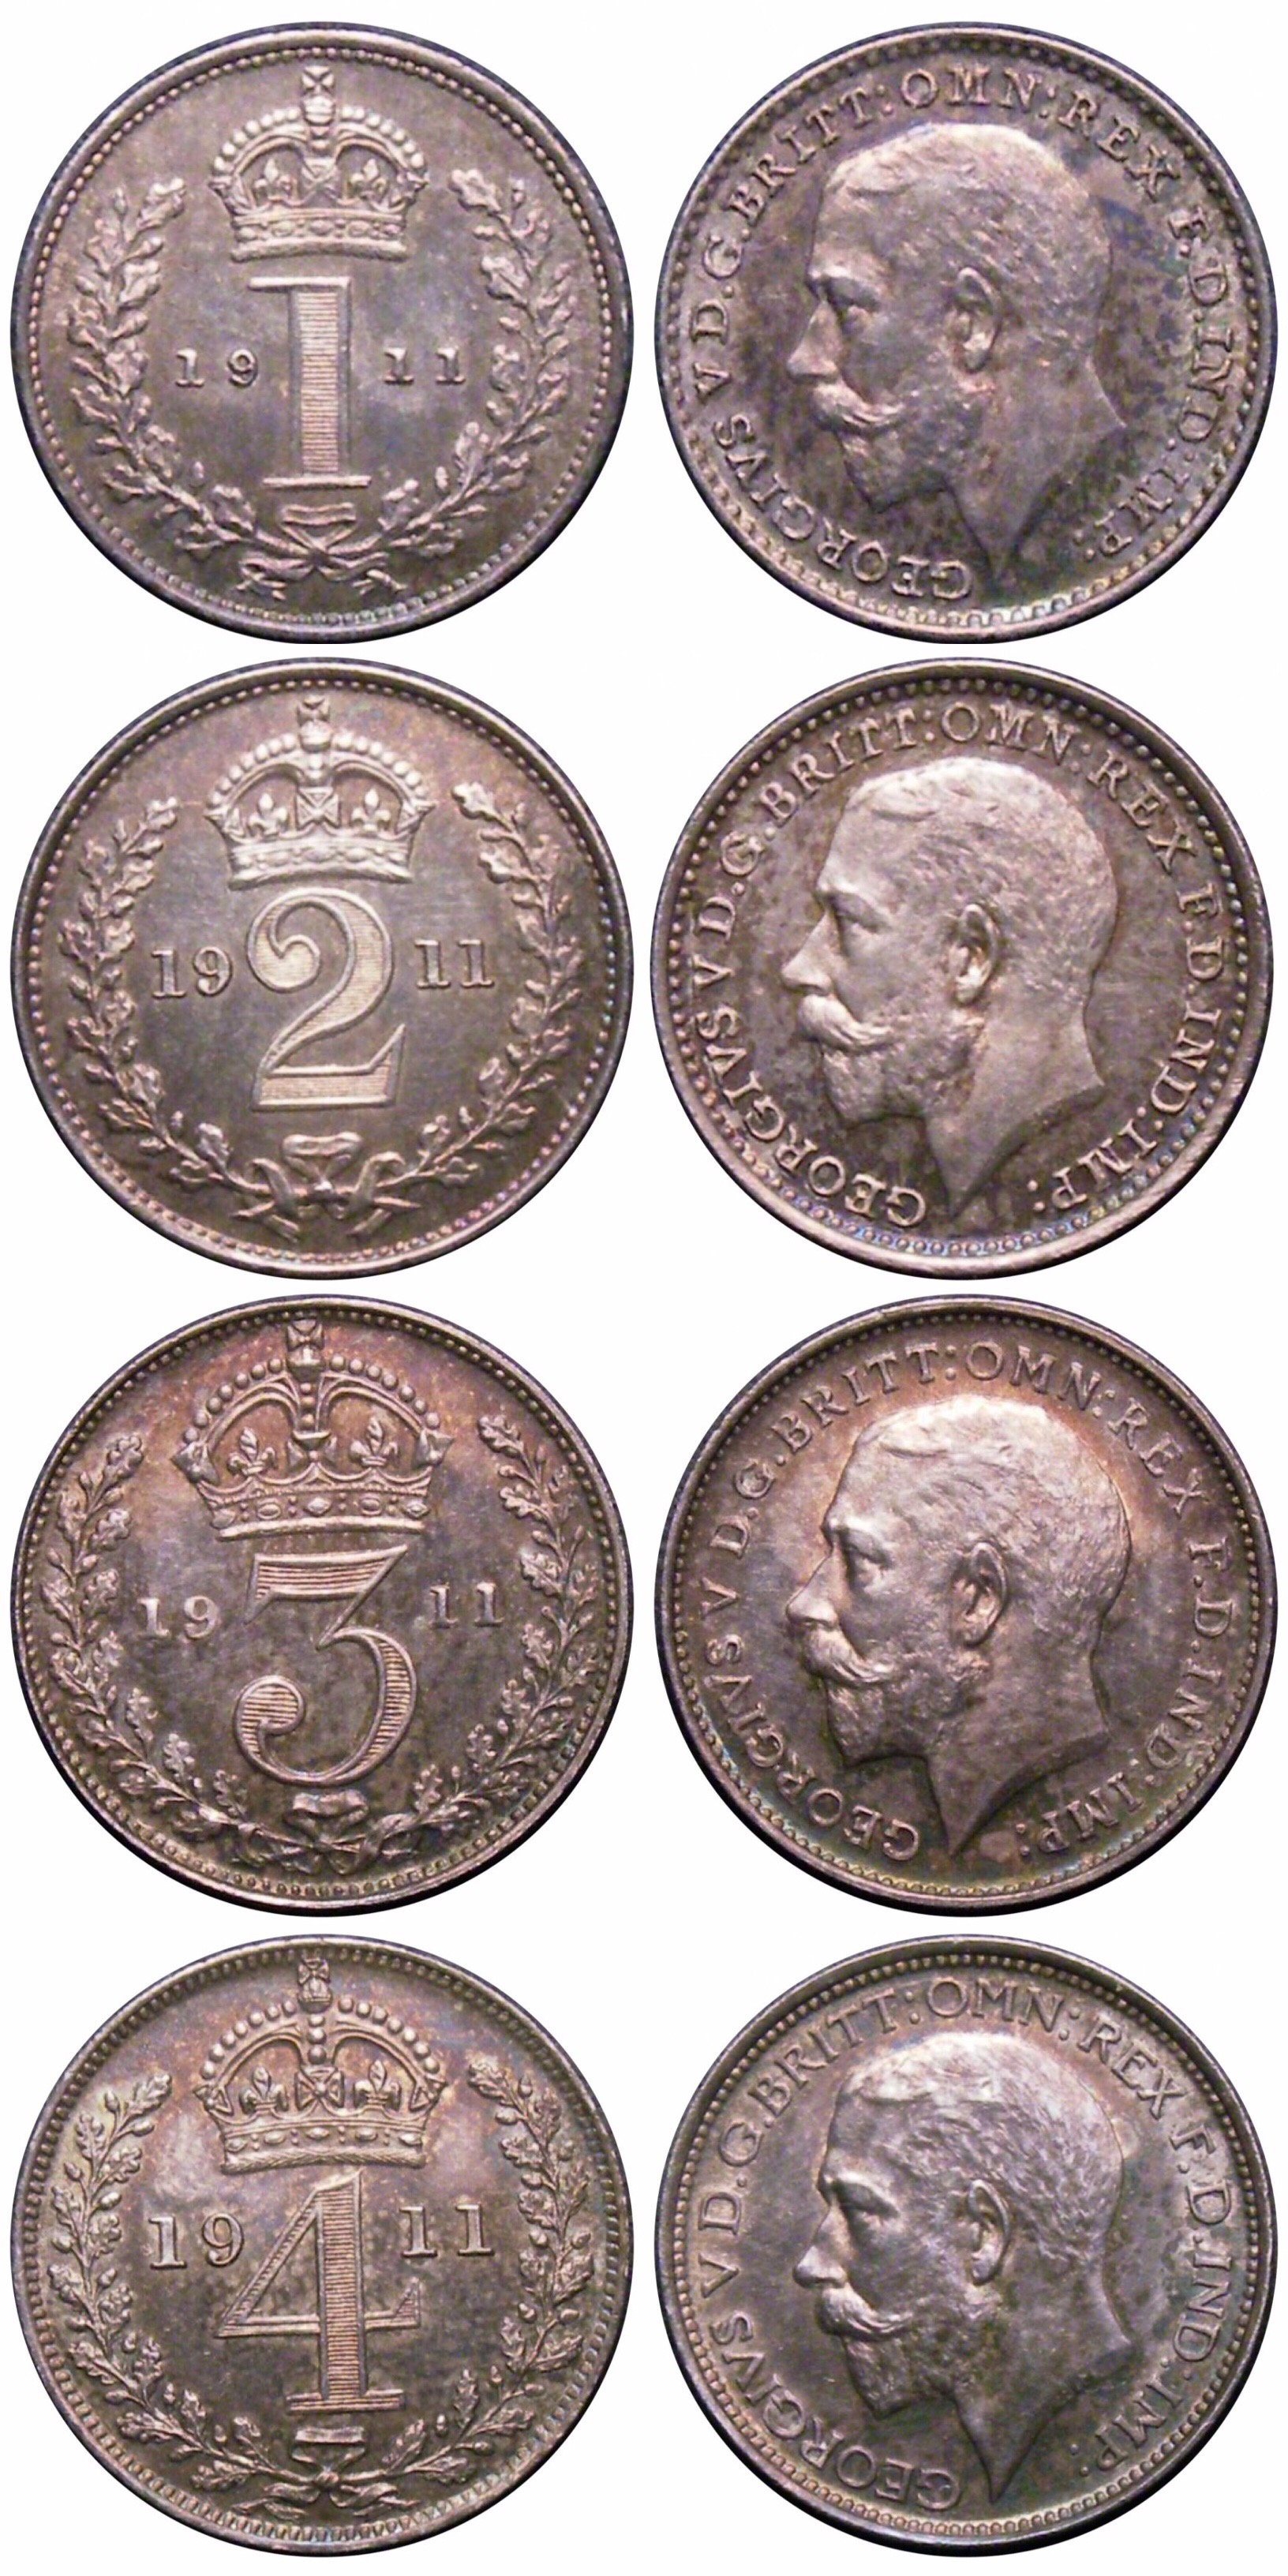 1911 Maundy set, CGS 85 85 88 88, BU-nFDC, George V, sold